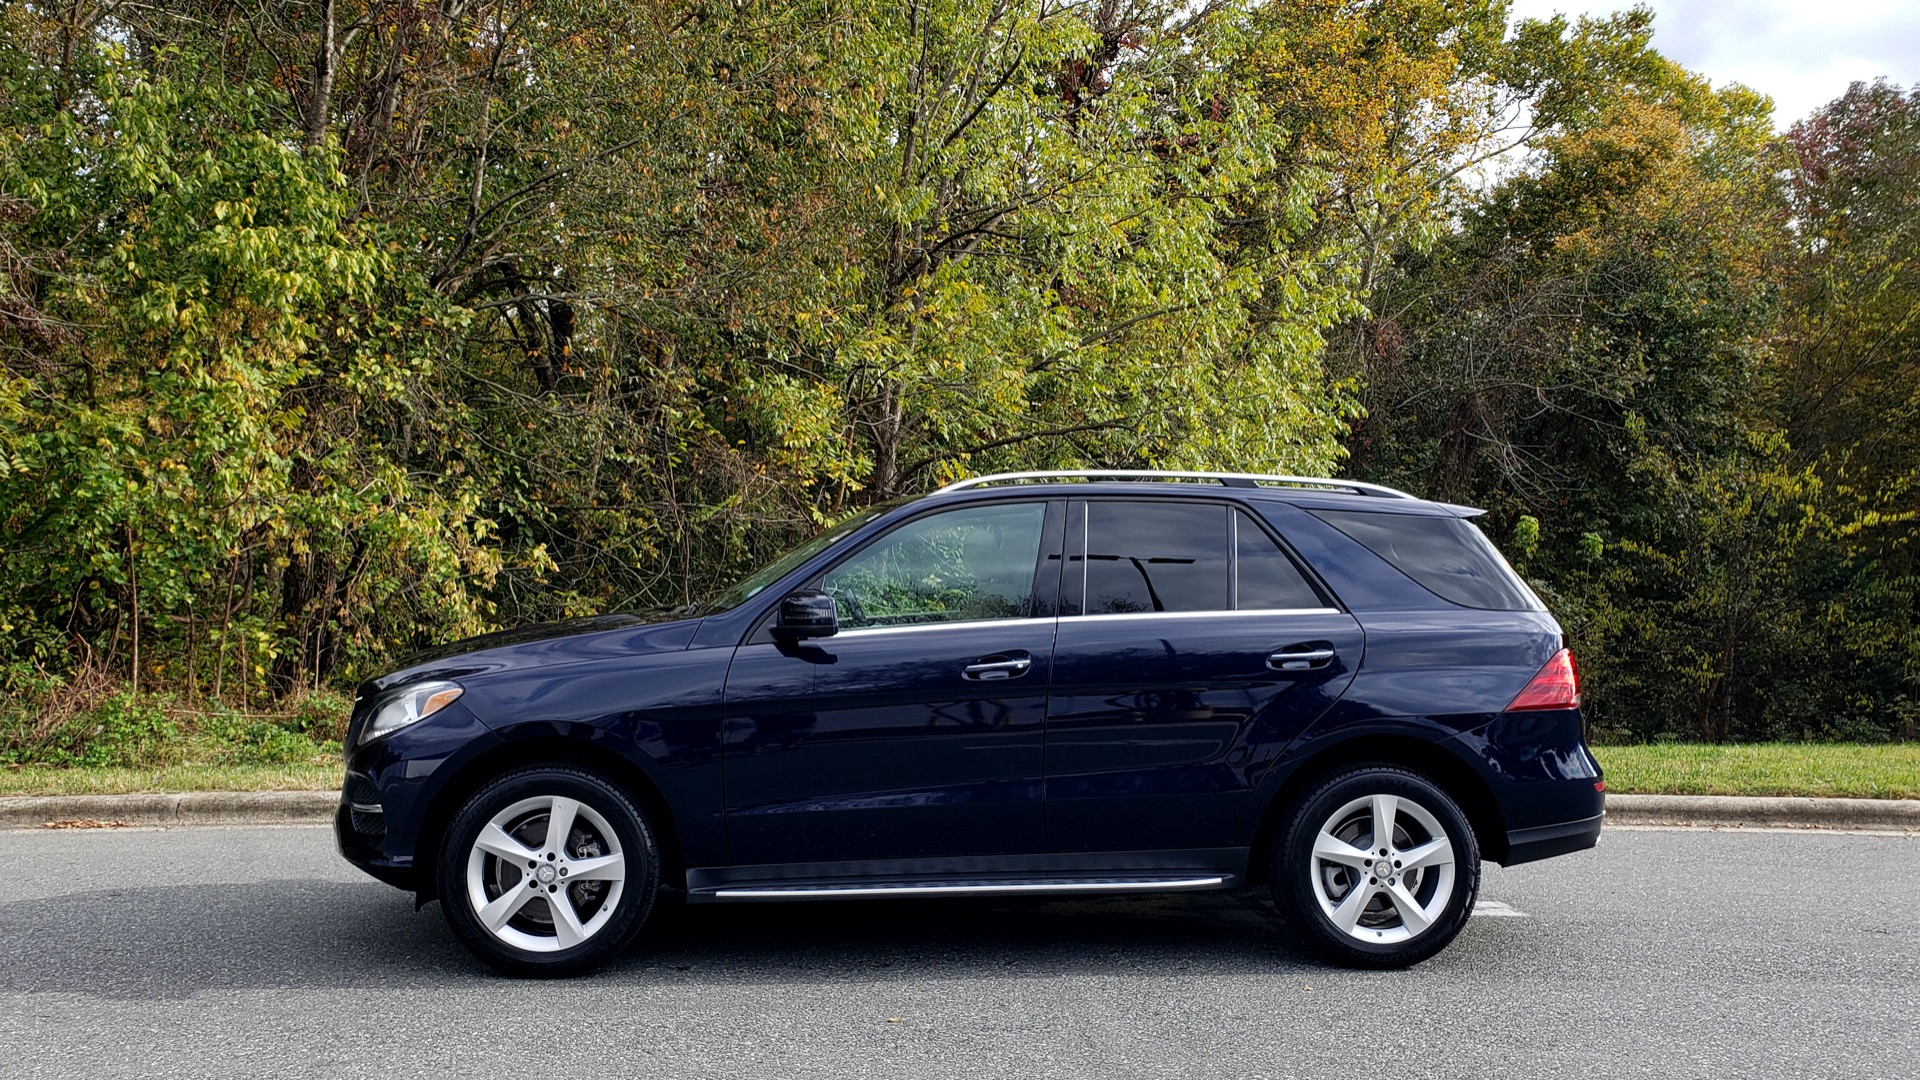 Used 2016 Mercedes-Benz GLE 350 PREMIUM / NAV / SUNROOF / BACK-UP CAMERA / LANE TRACKING for sale Sold at Formula Imports in Charlotte NC 28227 2